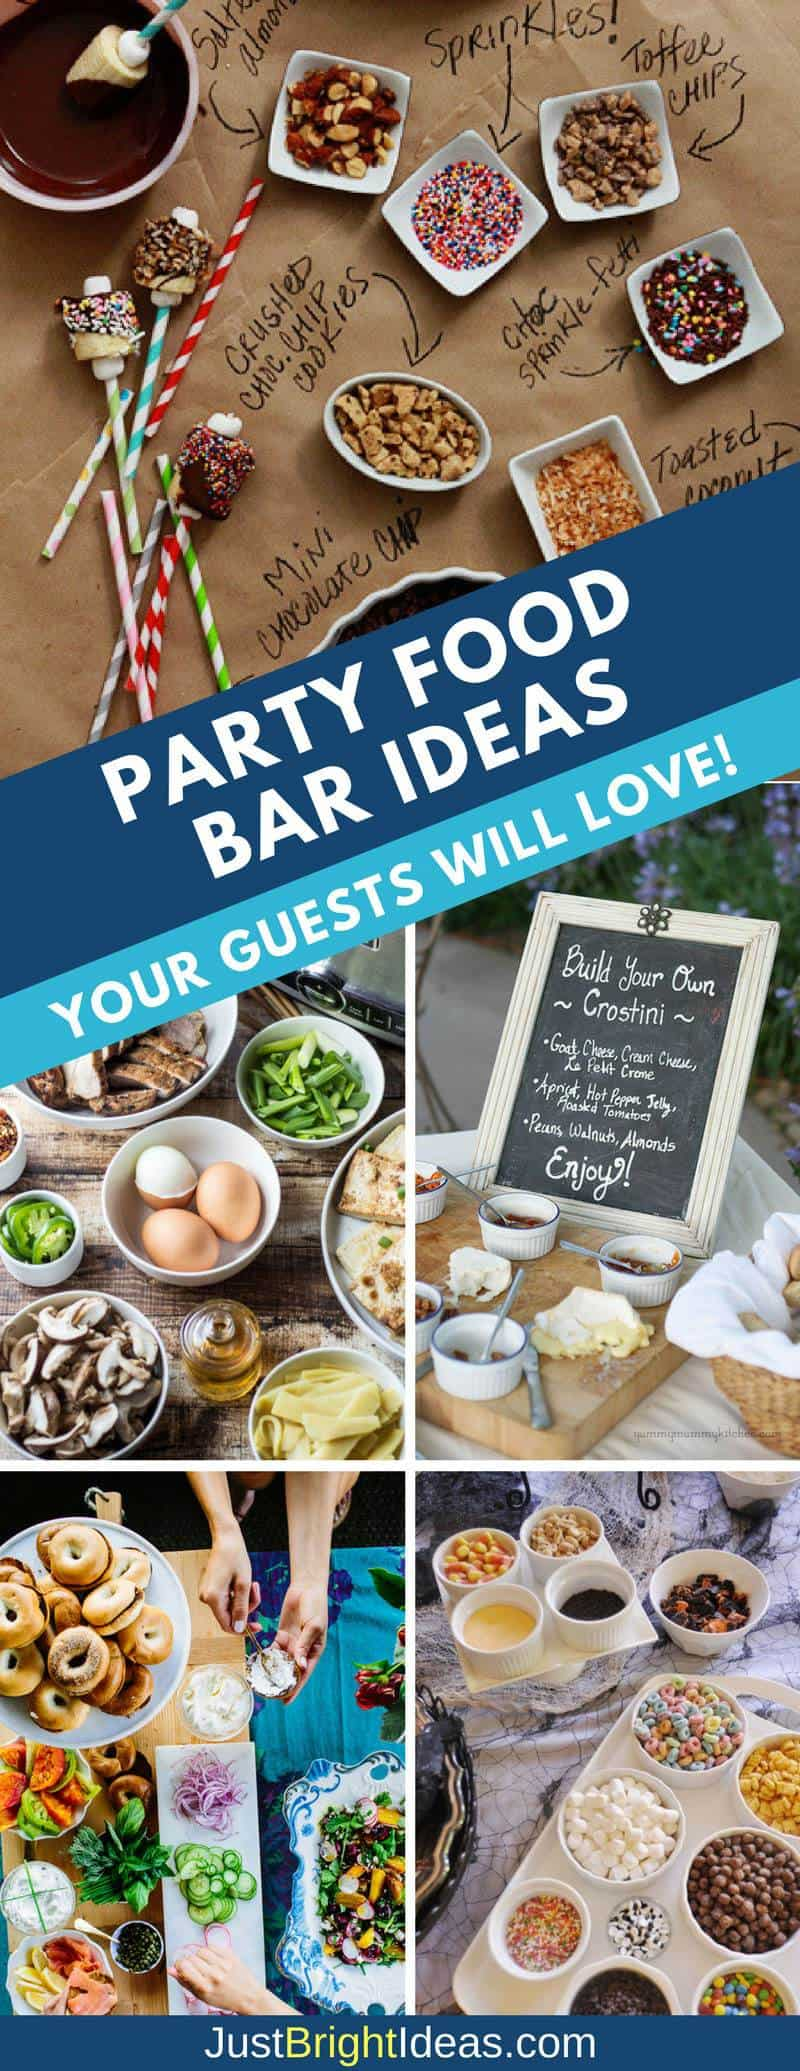 26 build your own party food bar ideas your guests will go for Bash bash food bar vodice